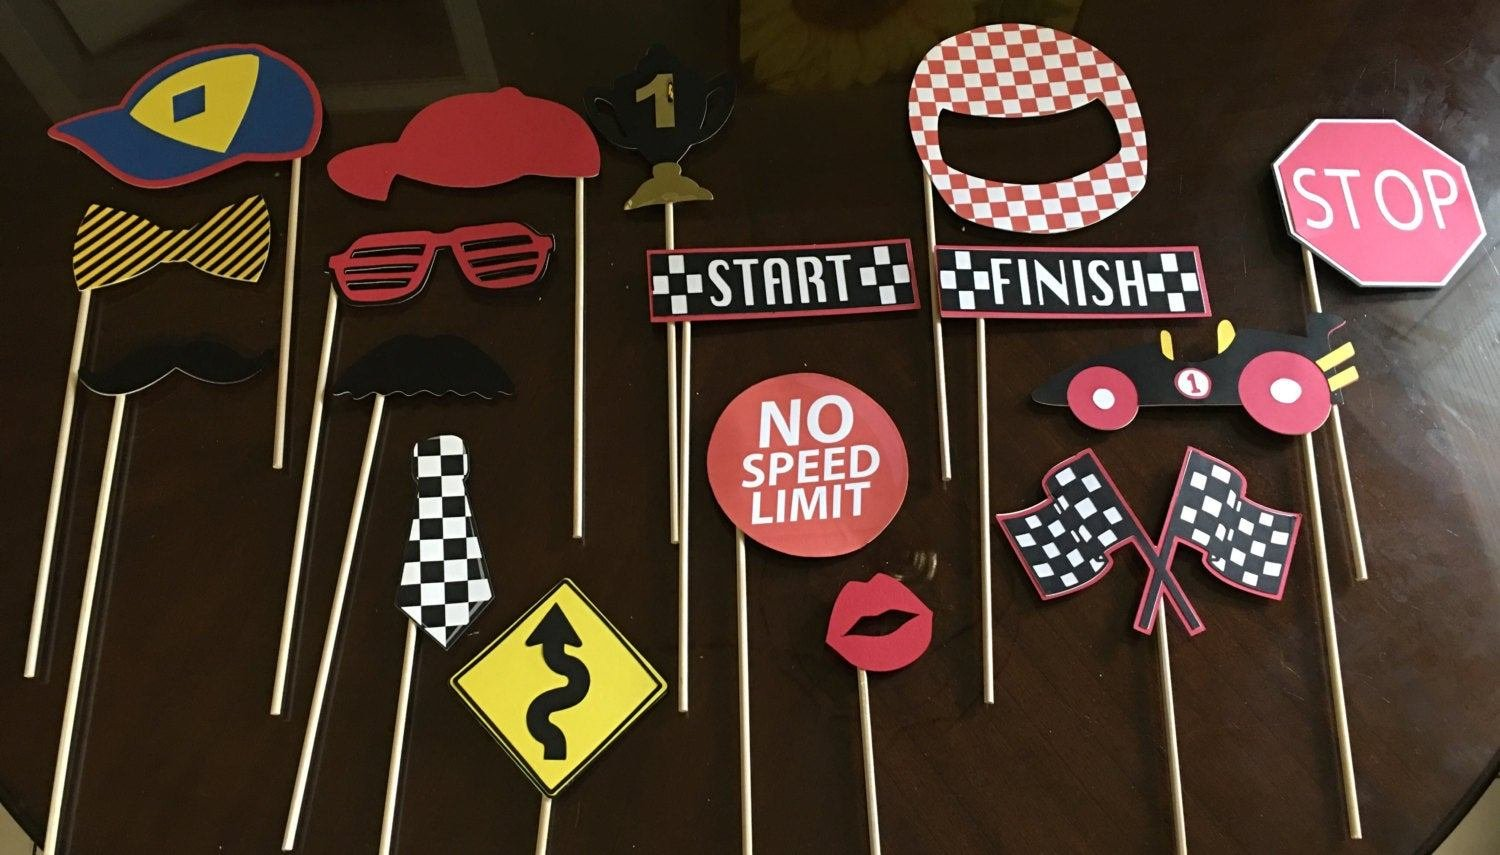 Latest Race Cars Photo Booth Props Cars Photo Props Free Download Original 1024 x 768